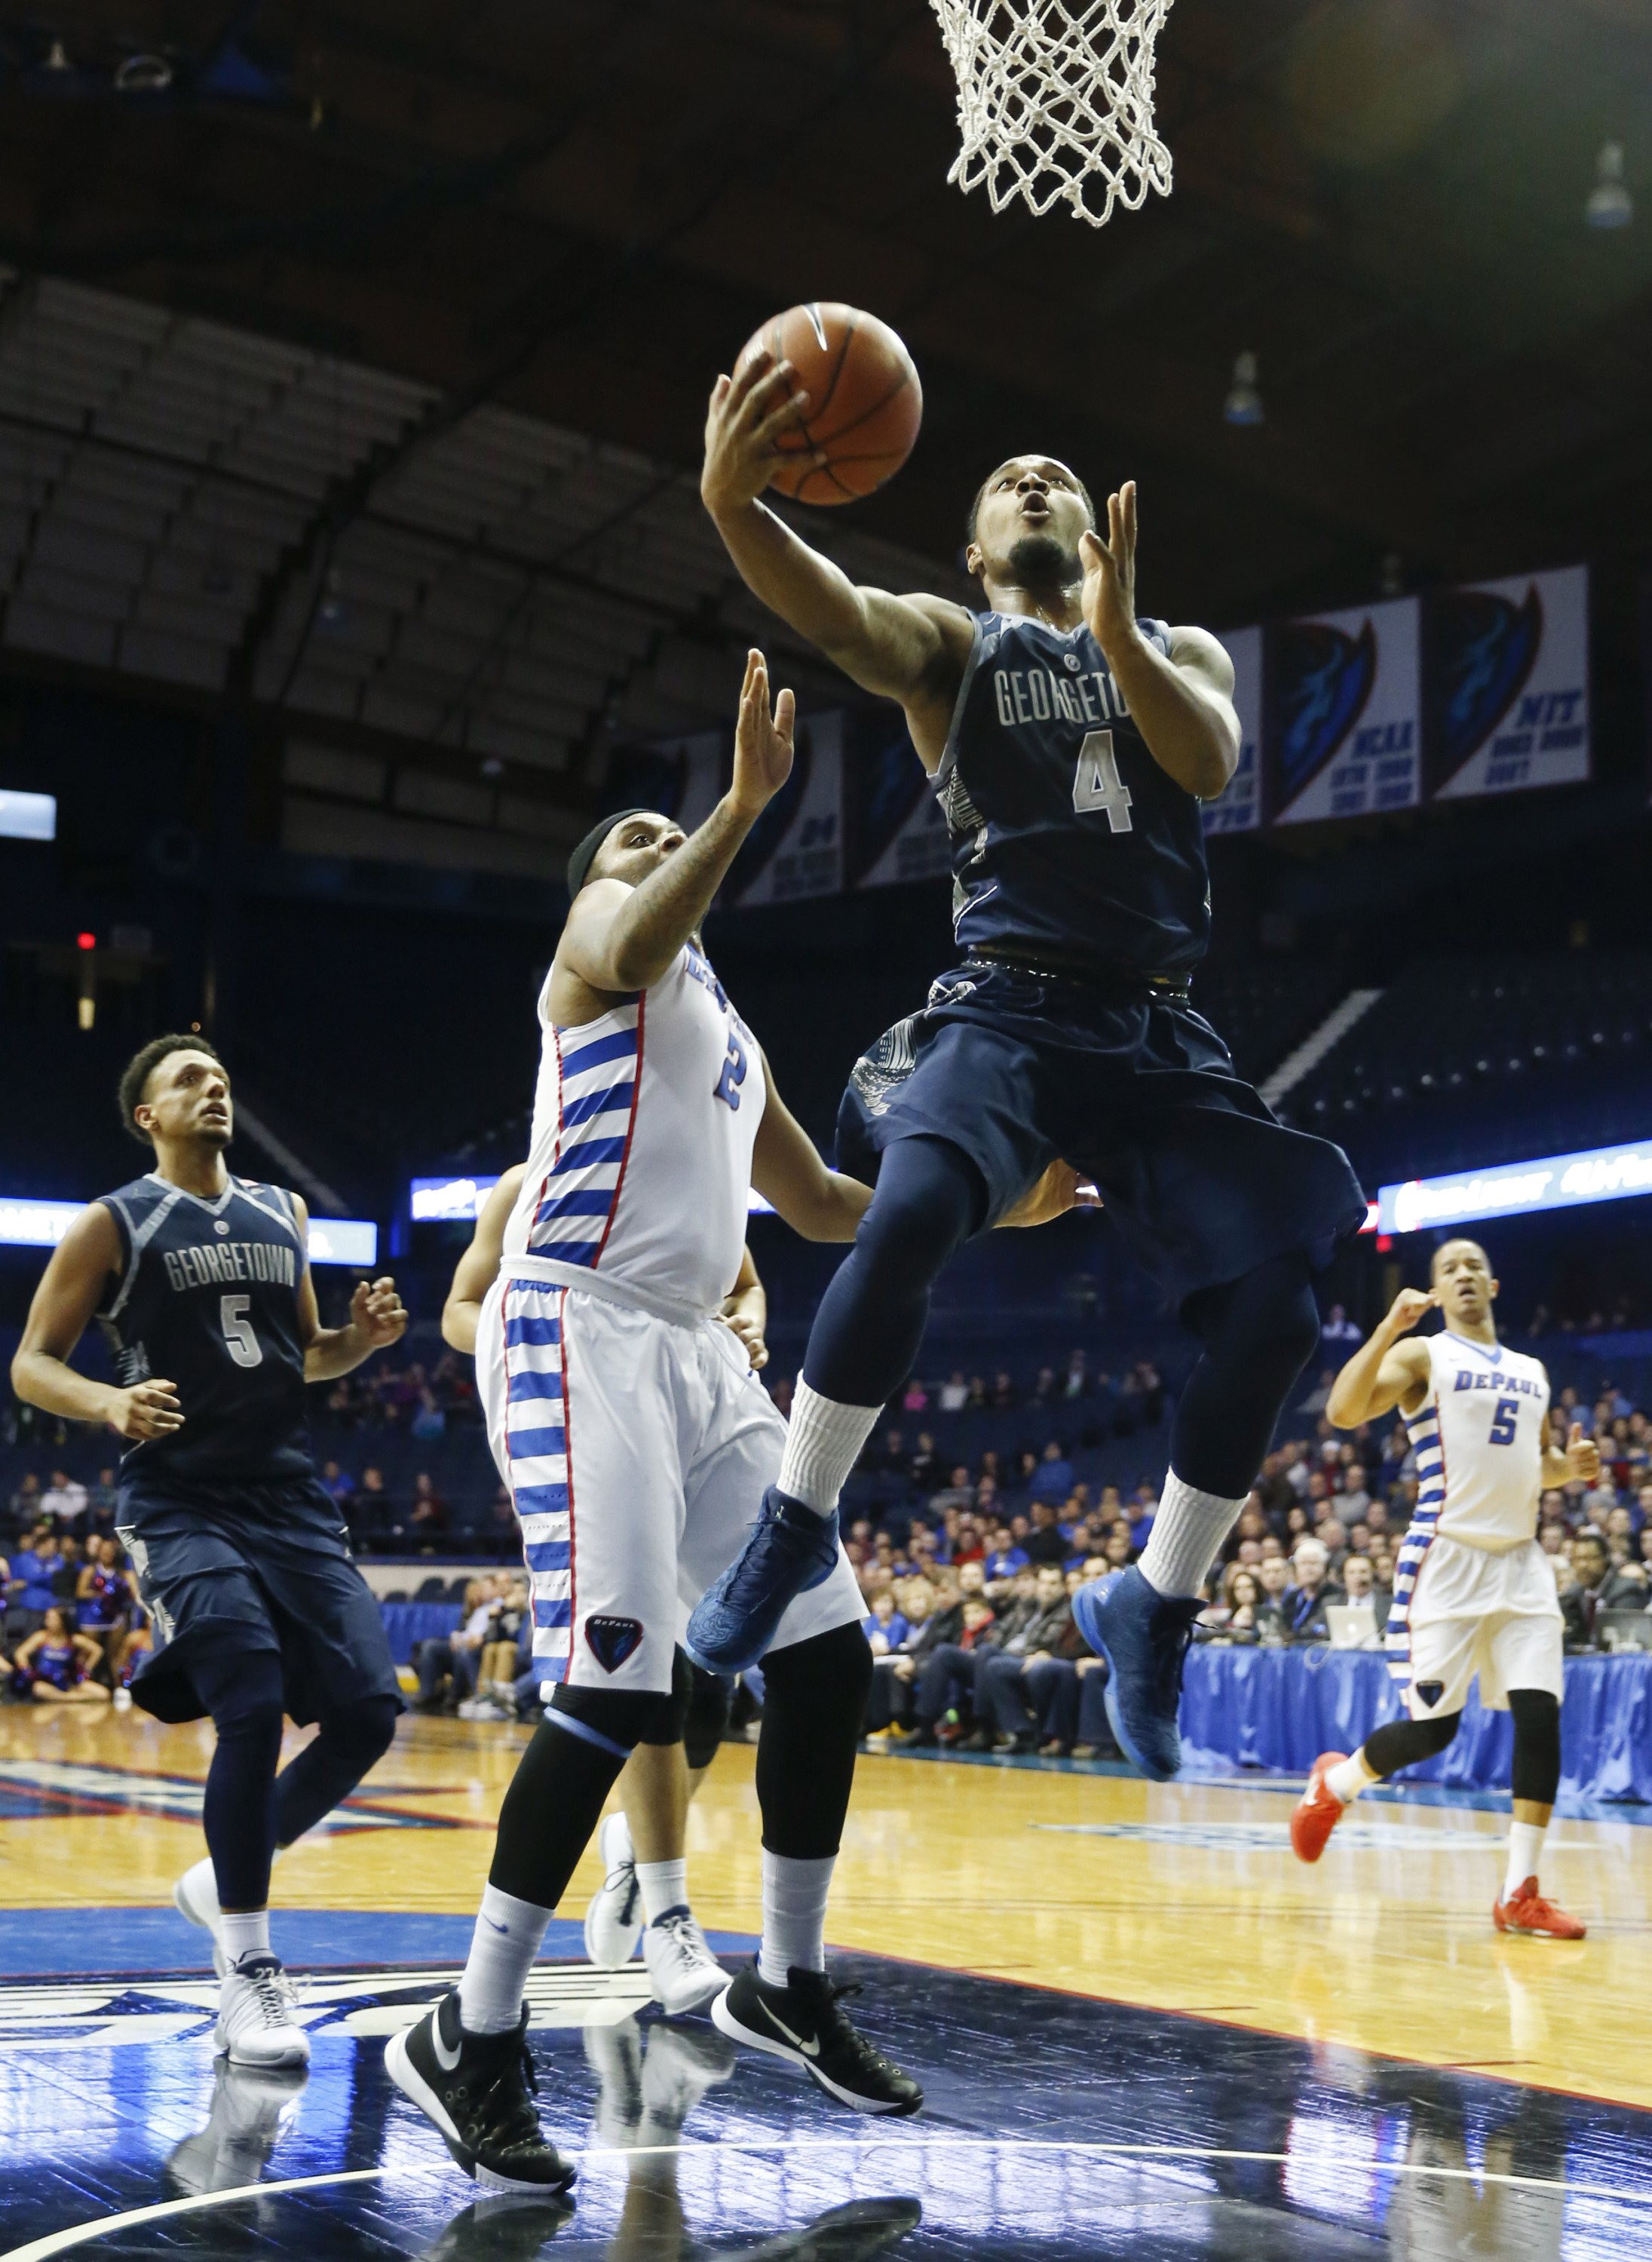 The Georgetown University men's basketball team will ring in the 2016 New Year on Saturday, Jan. 2, hosting BIG EAST Conference rival Marquette at Verizon Center.  Tipoff is slated for 5:30 p.m.